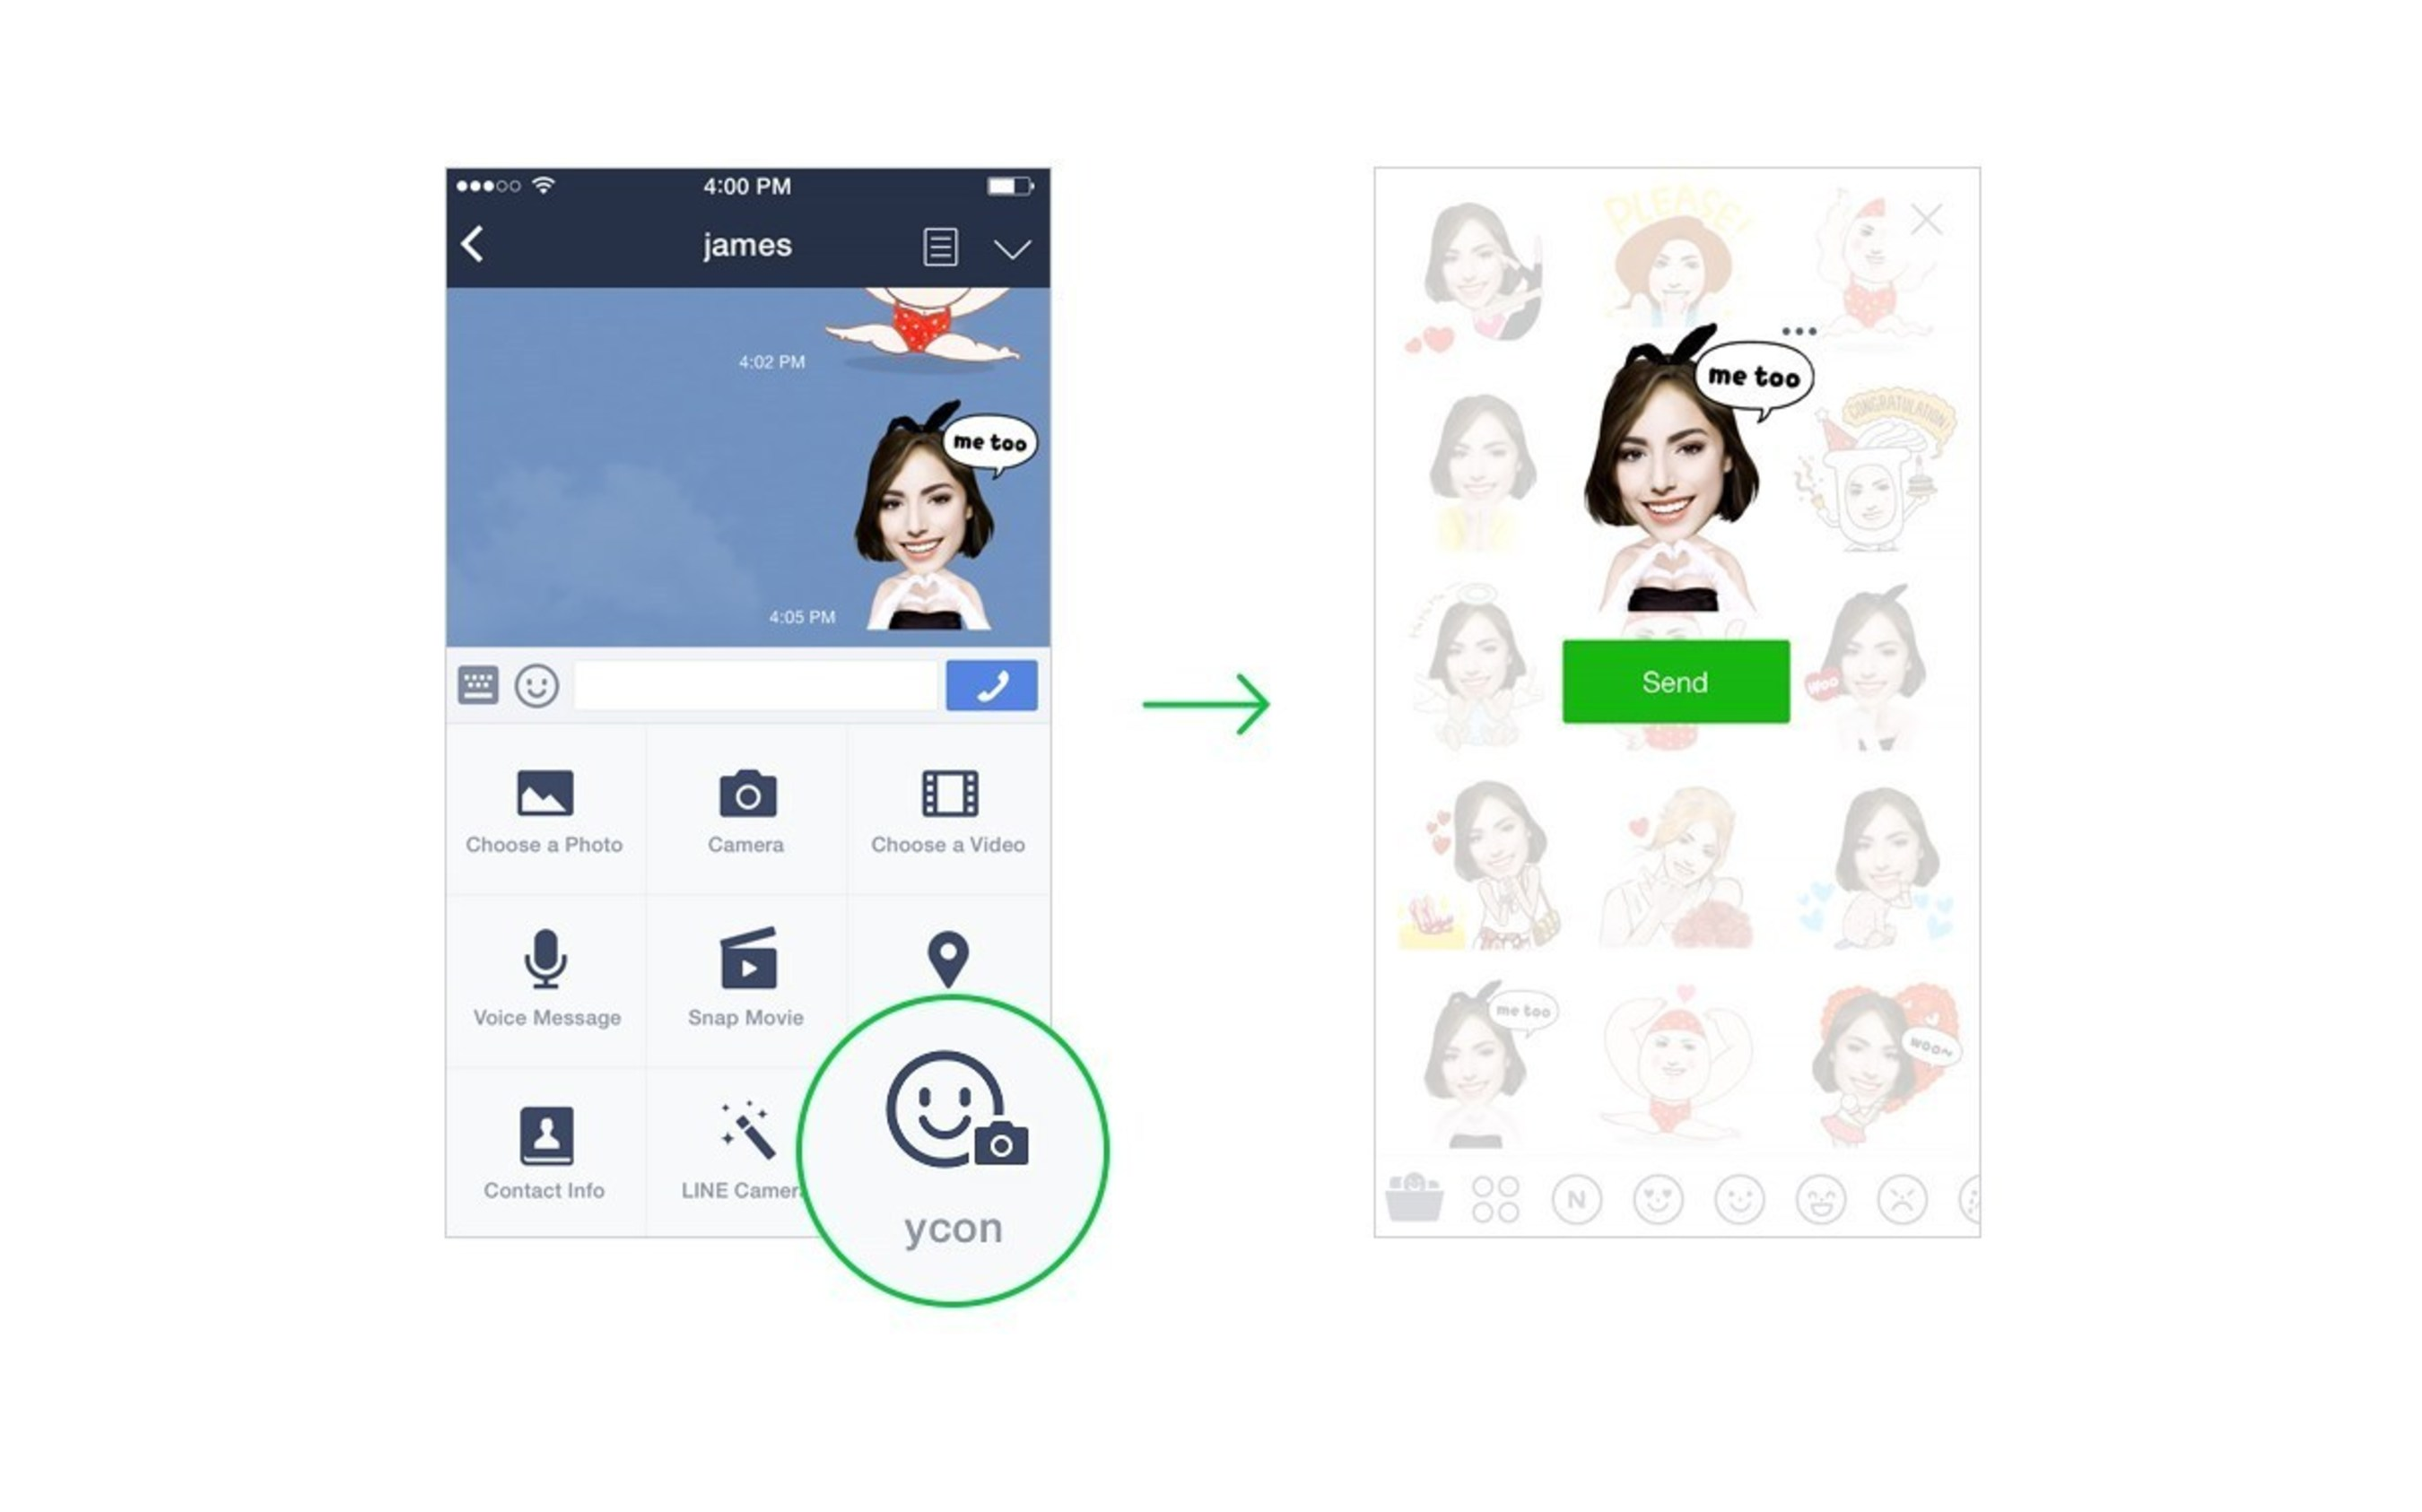 Access created stickers from LINE chats